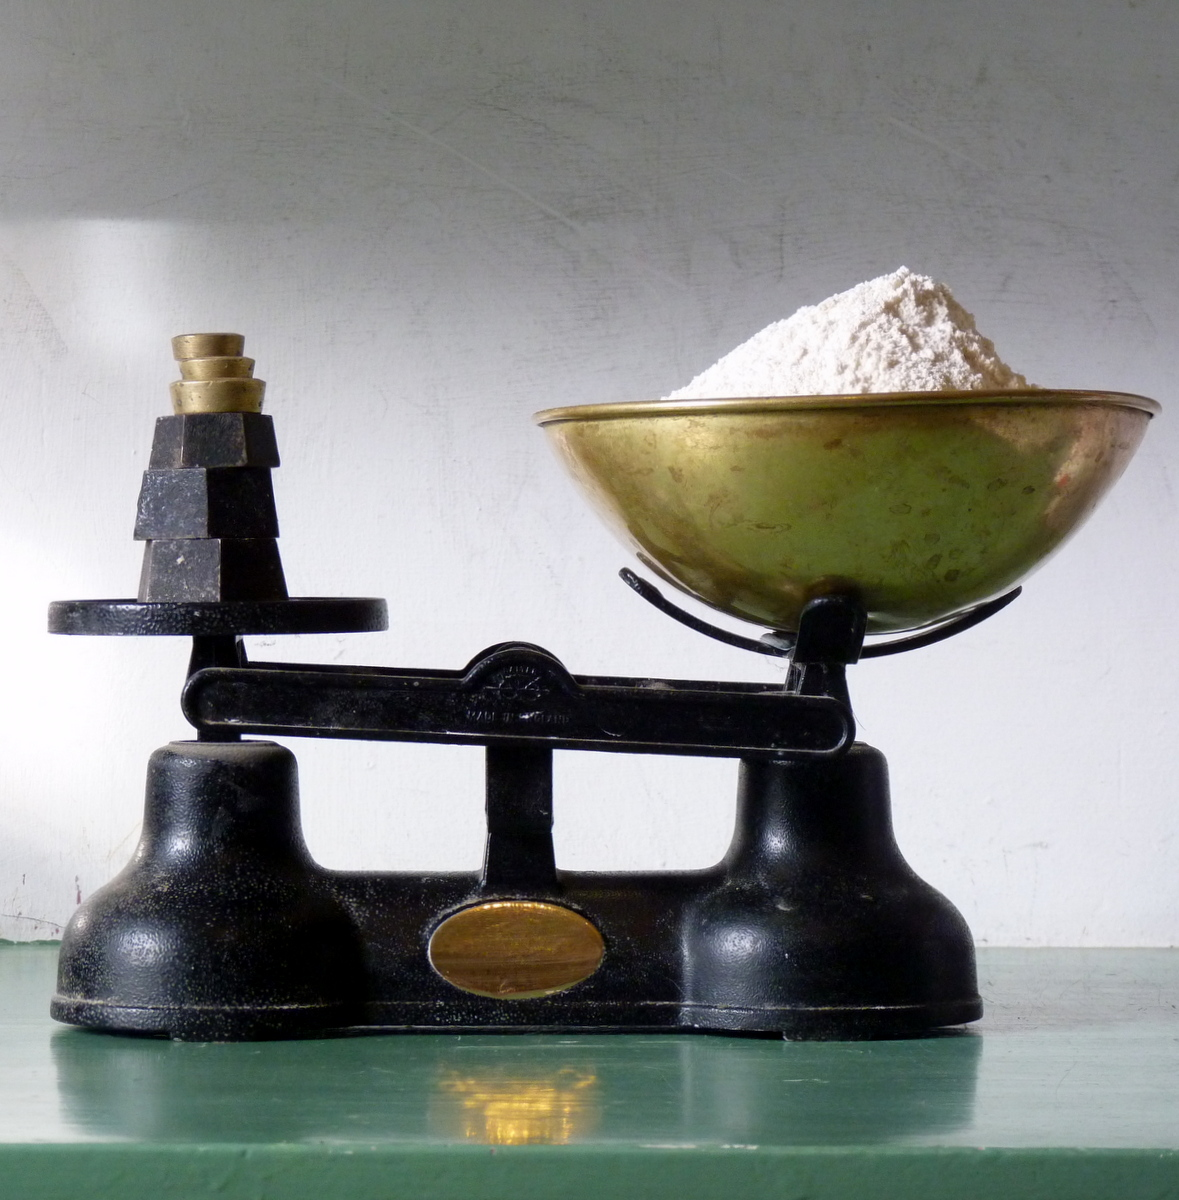 baking scales